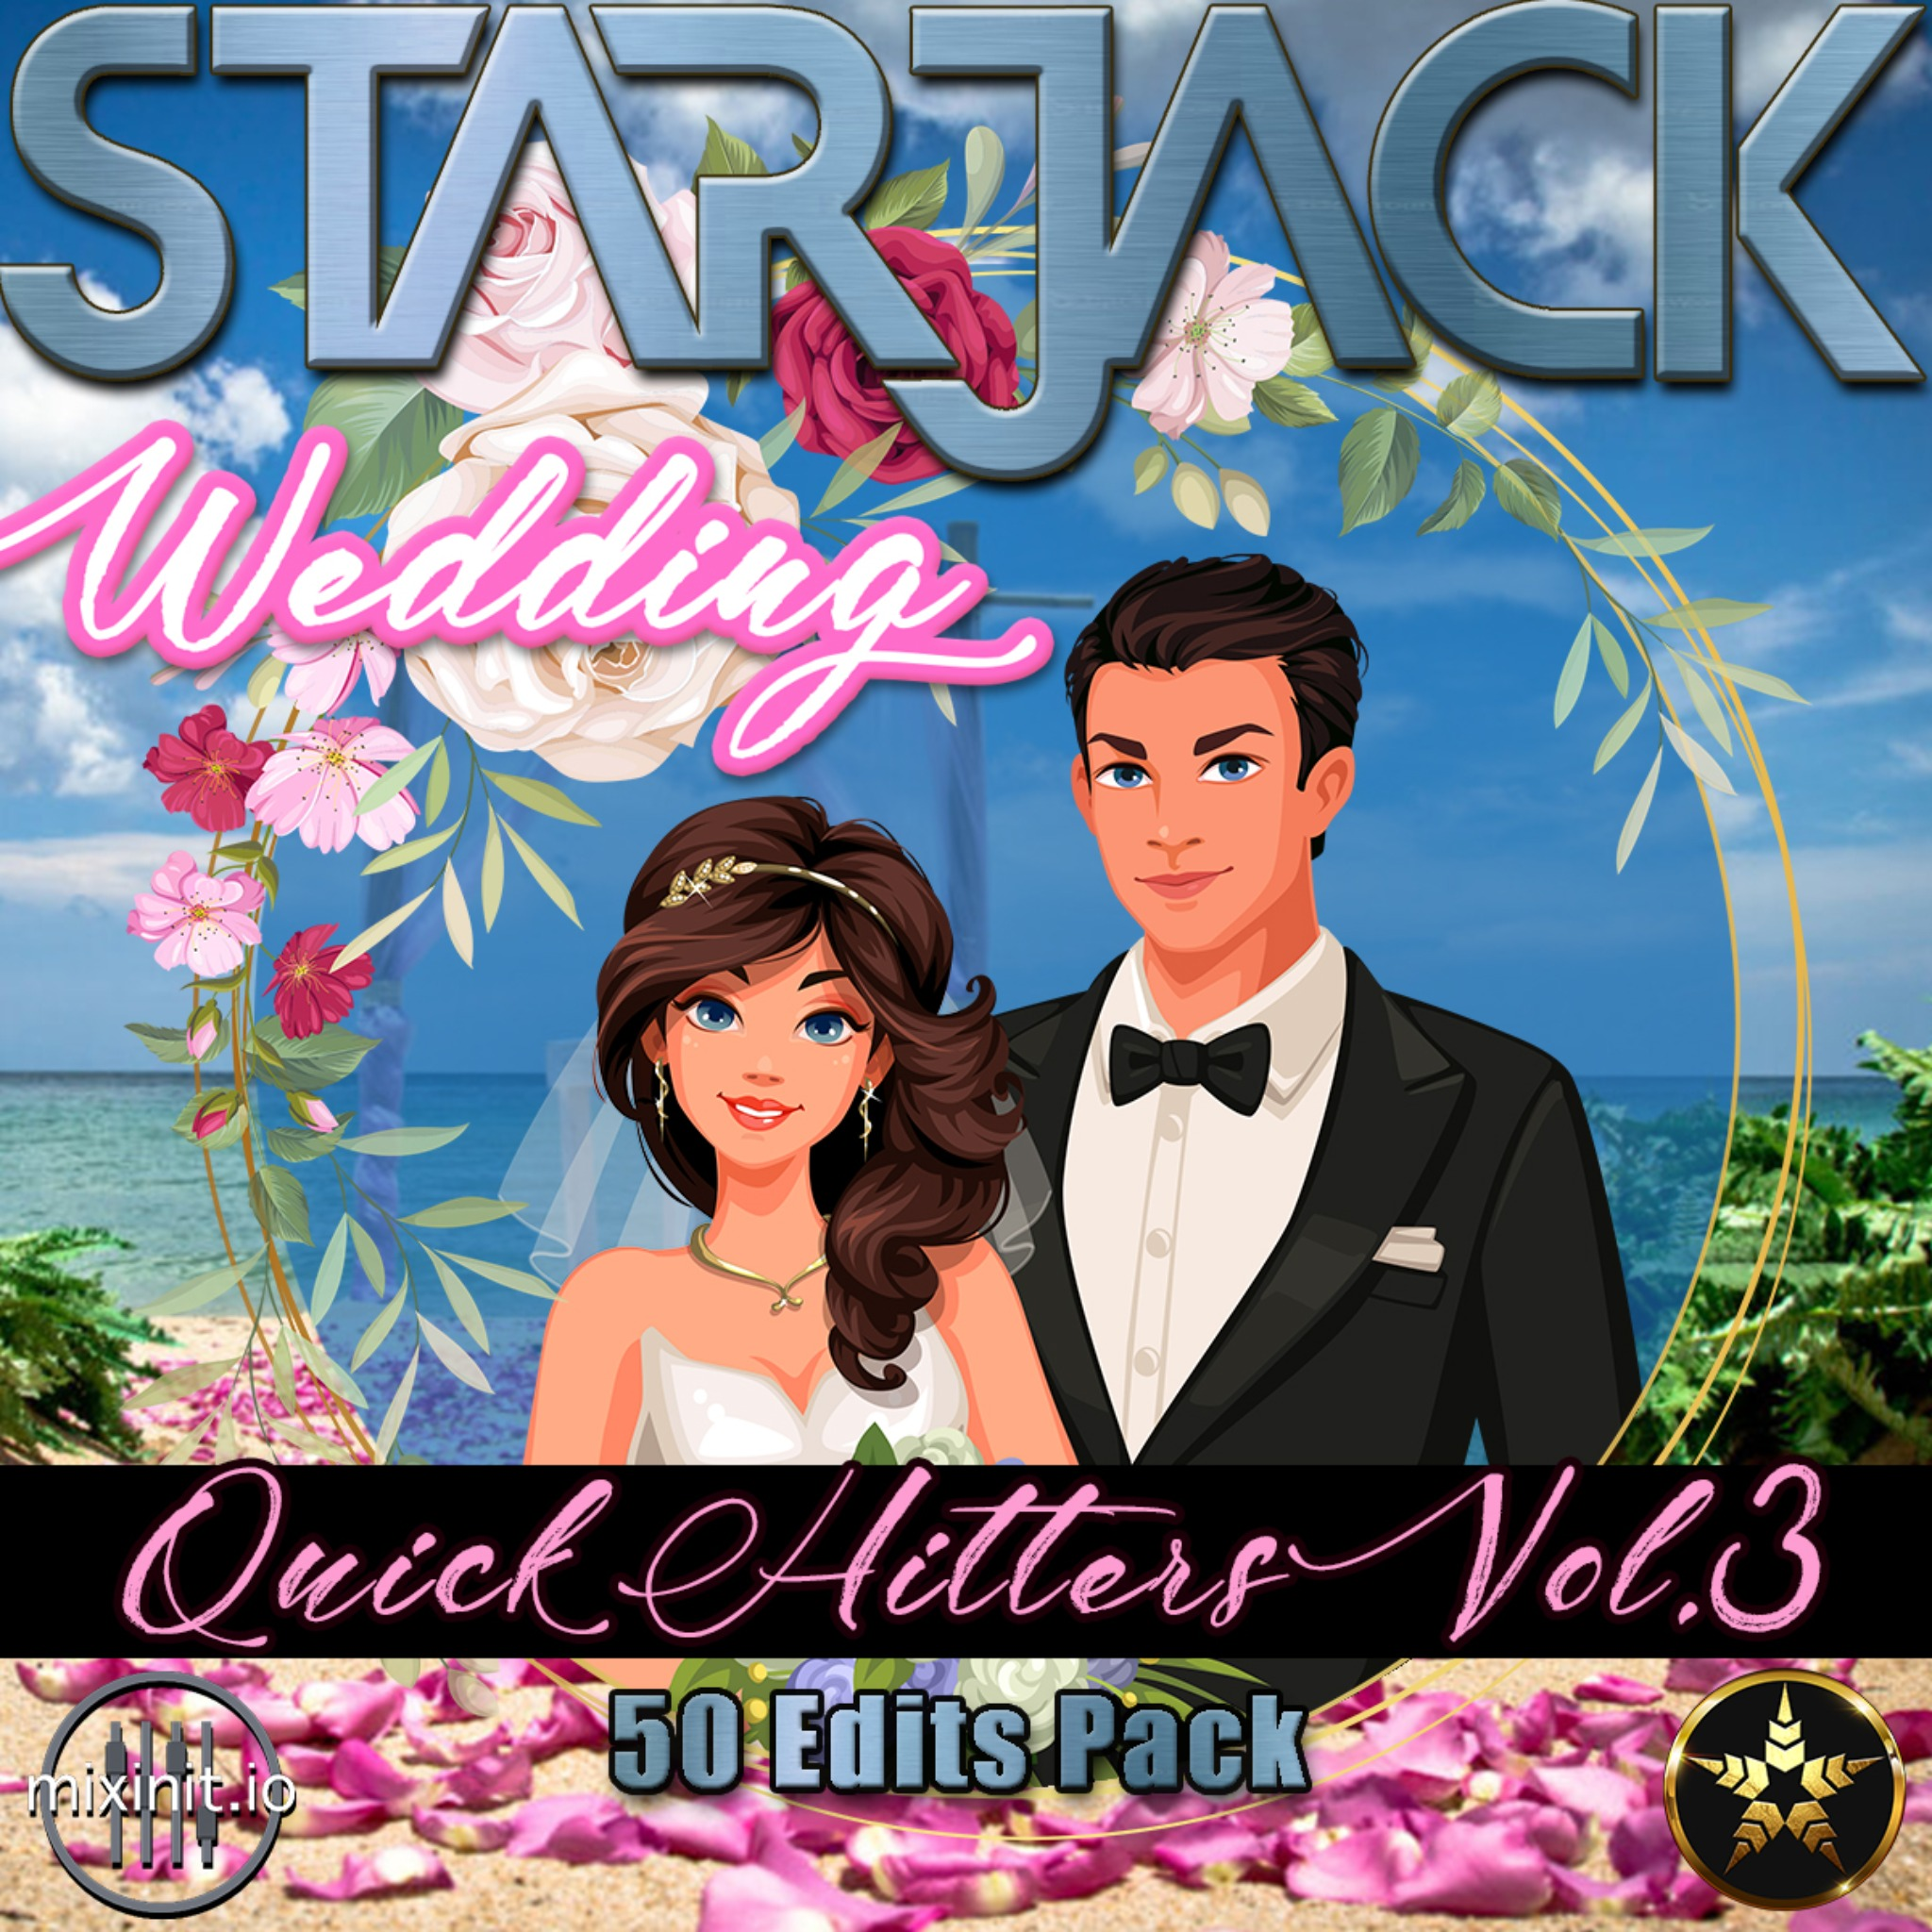 Starjack - Wedding Bangers Vol. 3 (Acap Out / Quick Hits 50 Pack)